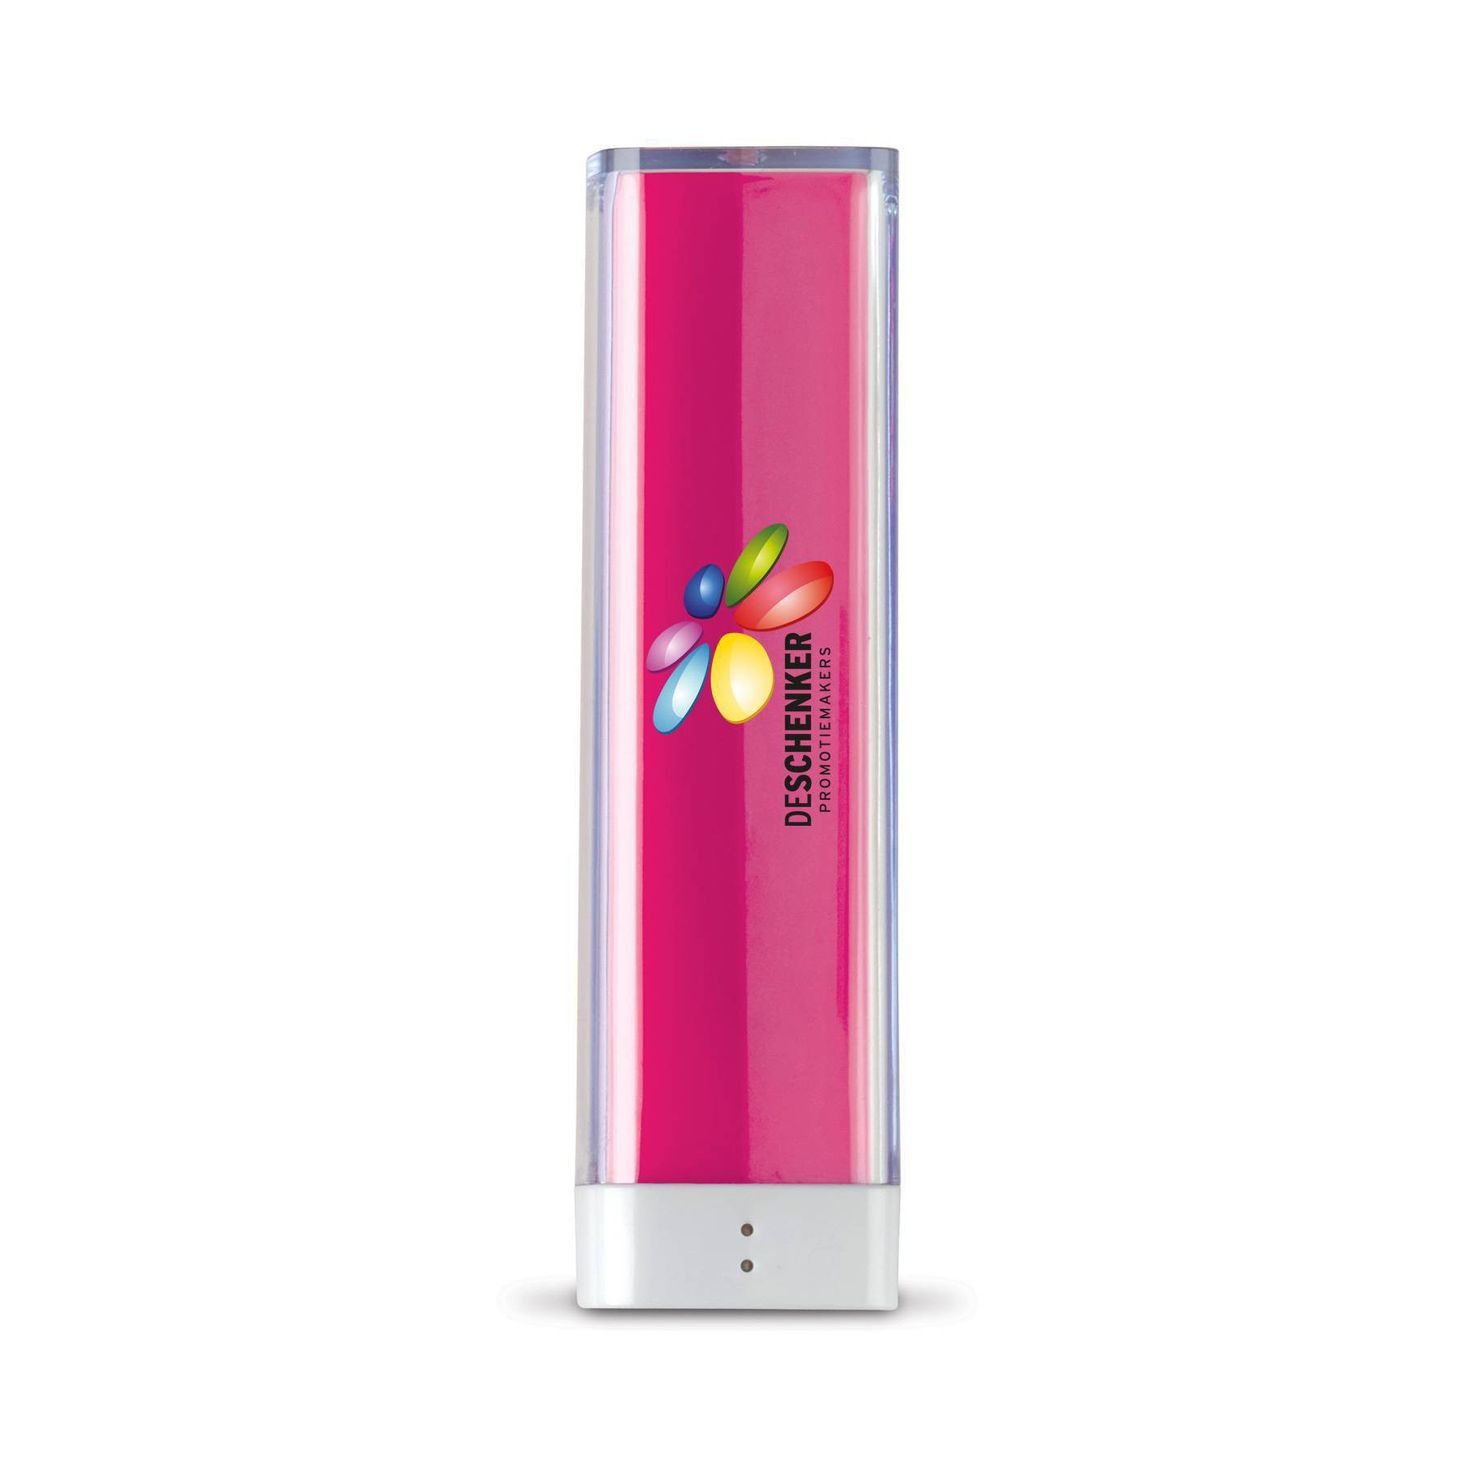 Roze Powerbank | Transparant | 2200 mAh